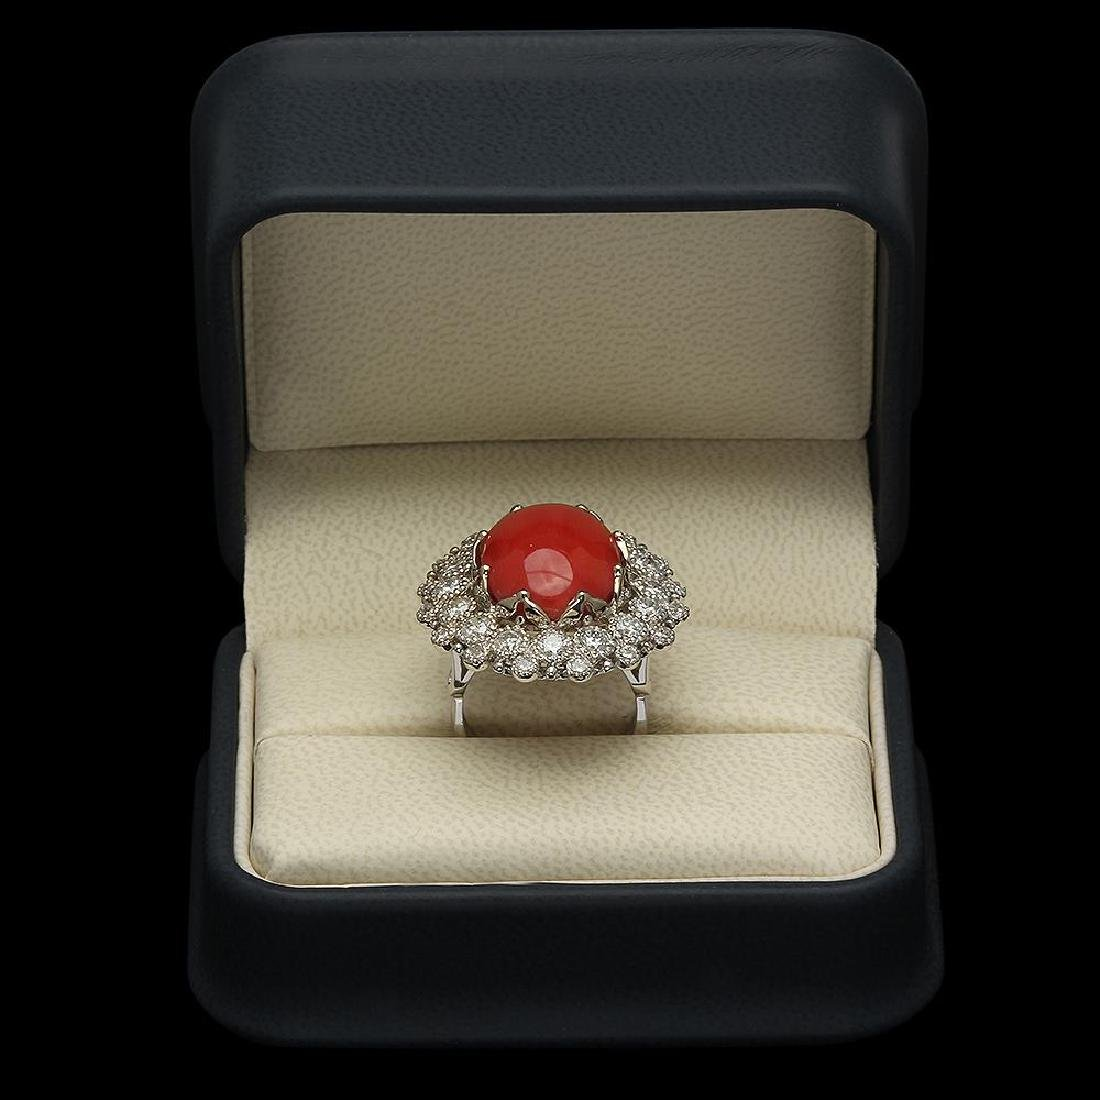 14K Gold 13.71ct Coral 2.58ct Diamond Ring - 4